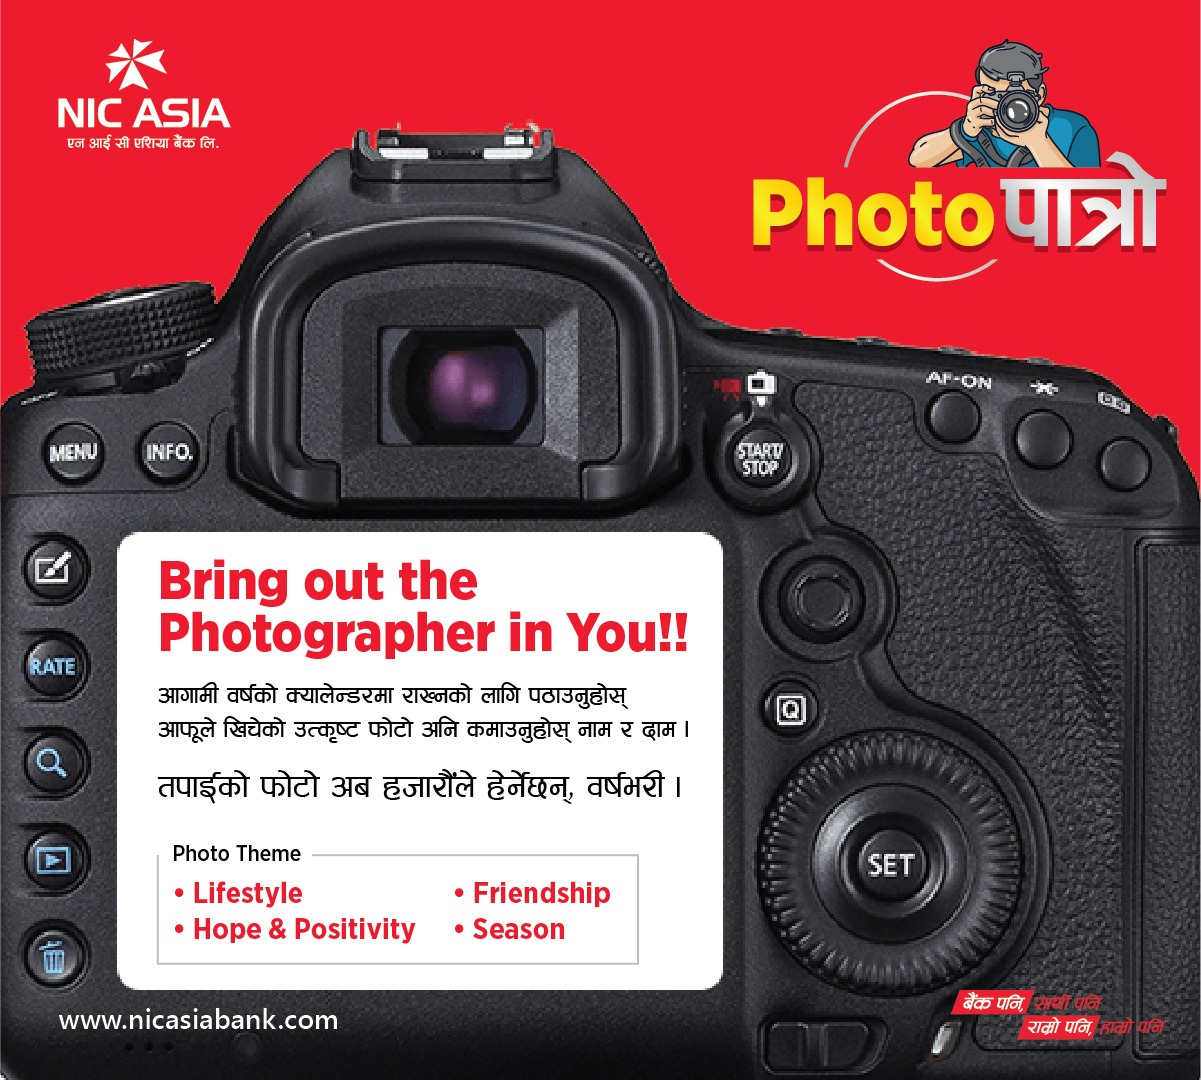 Bring out the PHOTOGRAPHER in You !!!